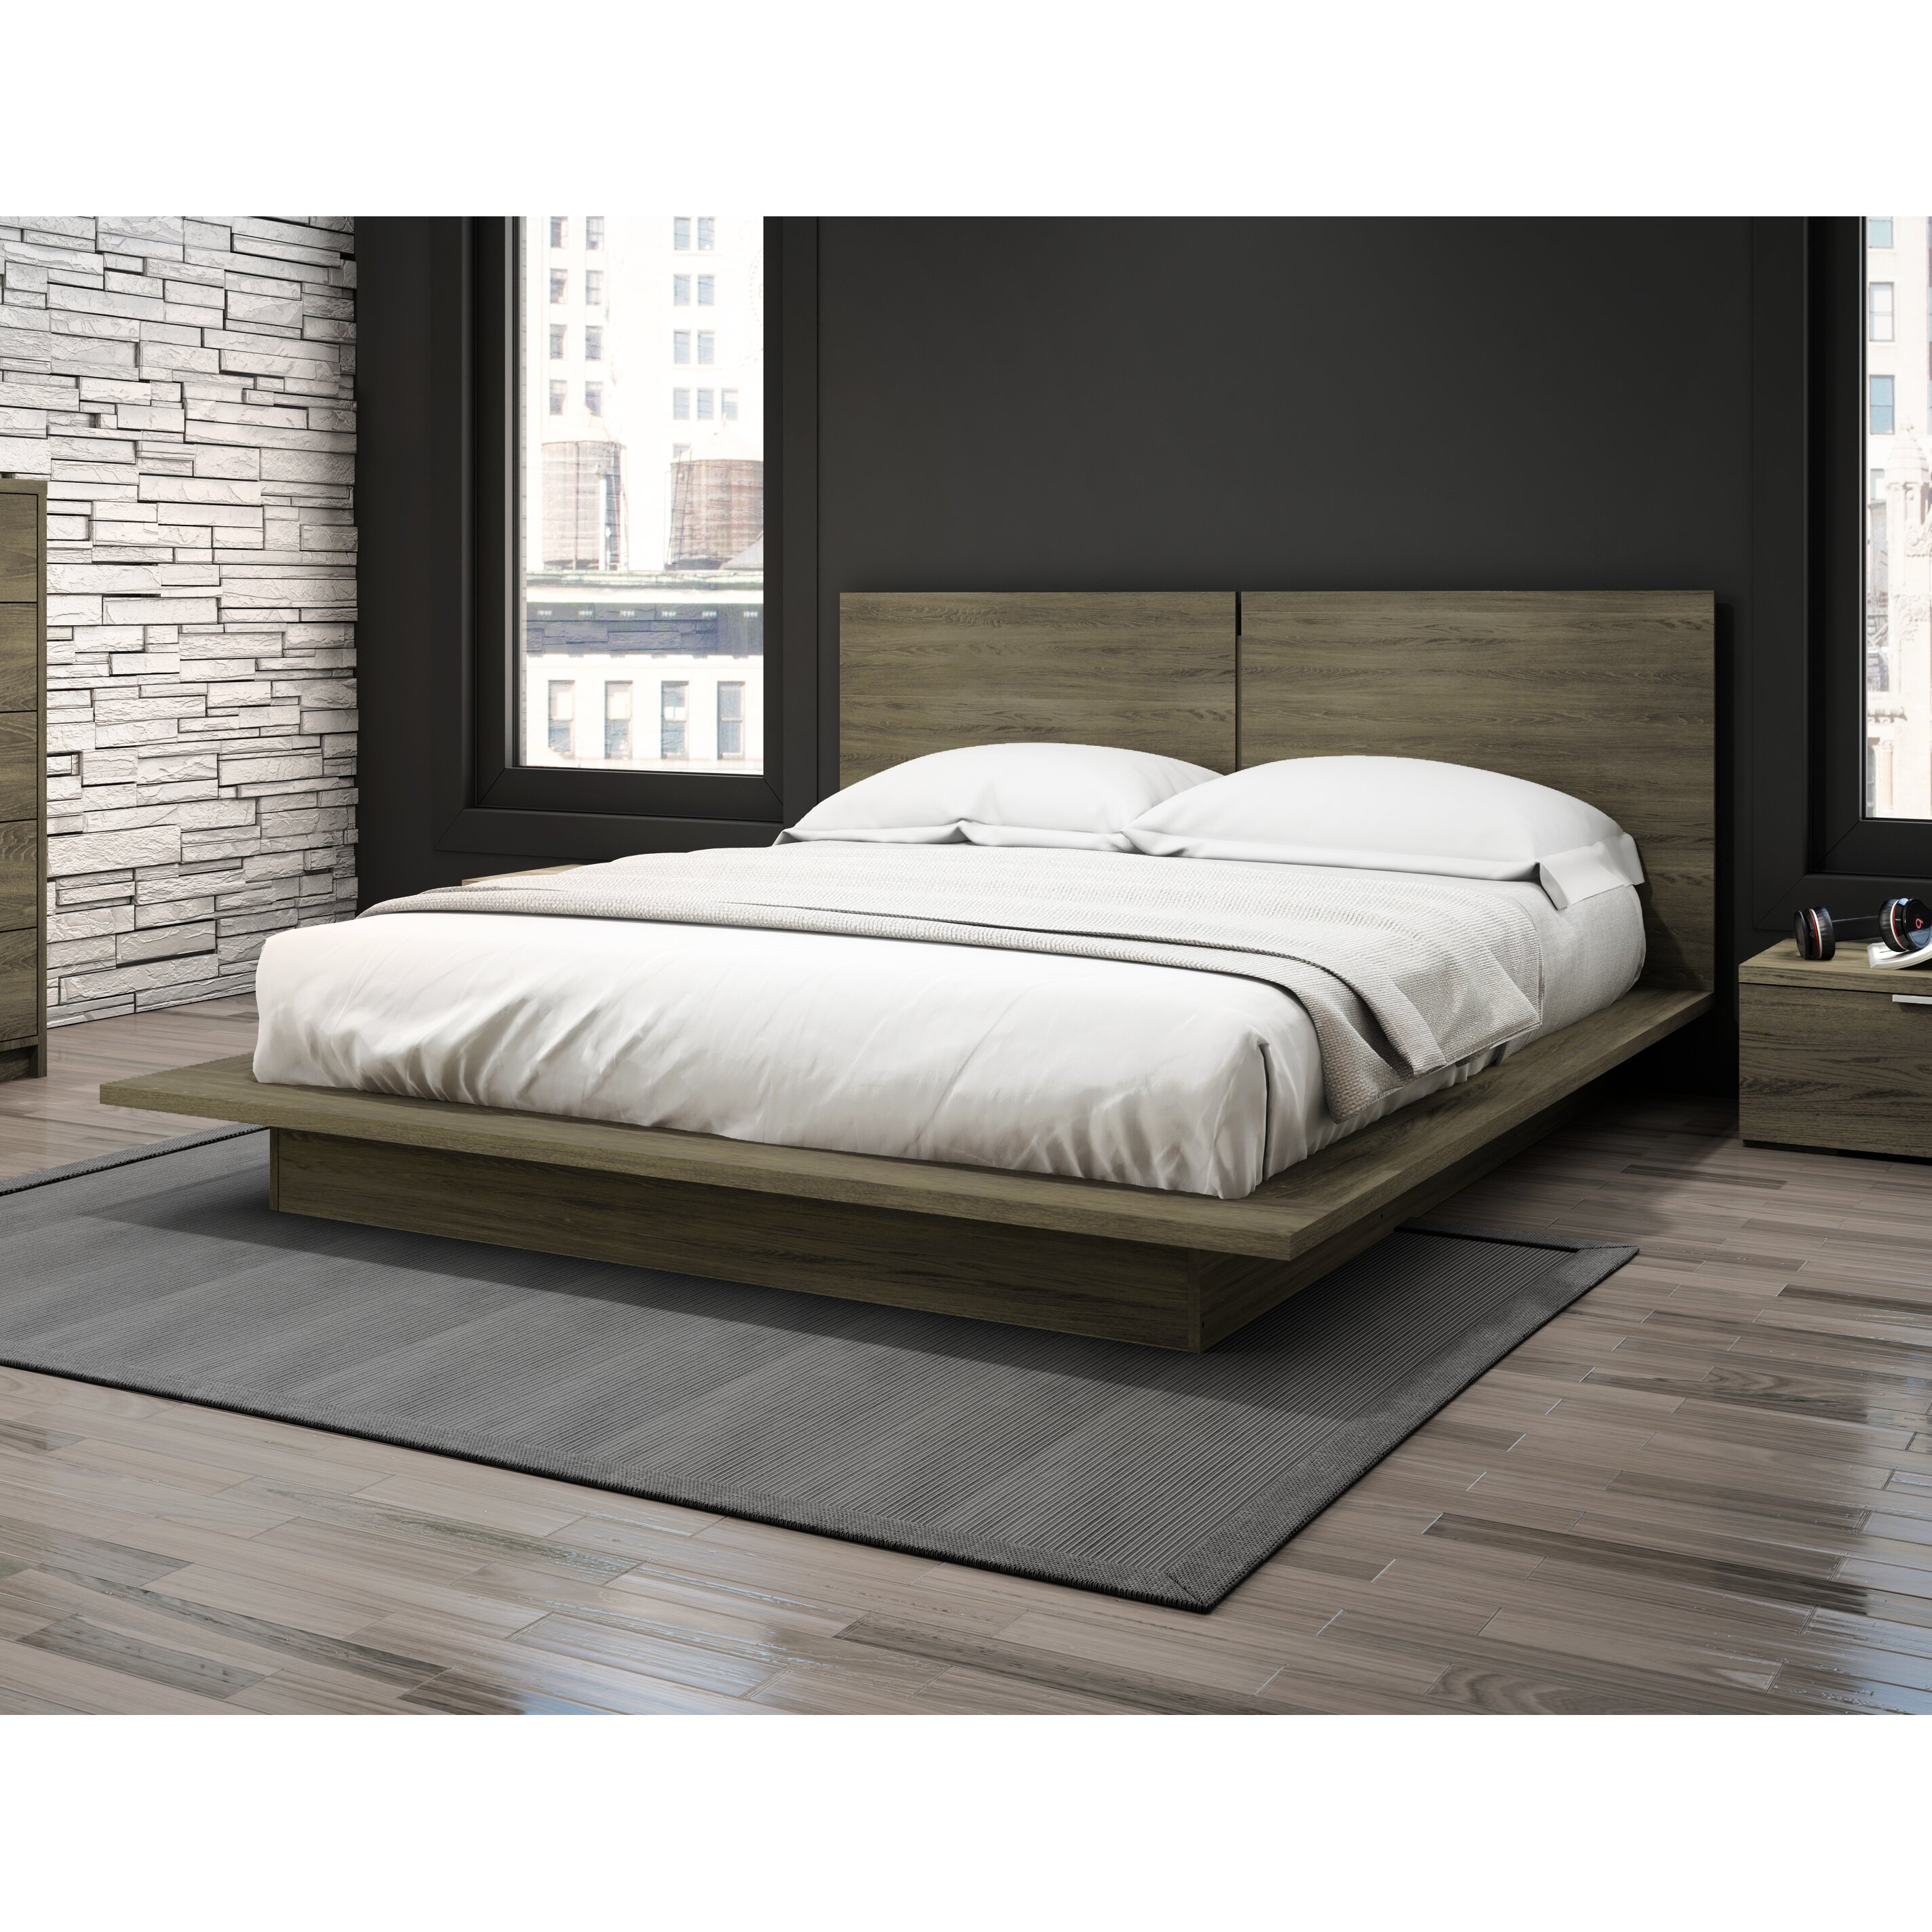 Stellar Home Modena Queen Platform Bed Reviews Wayfair